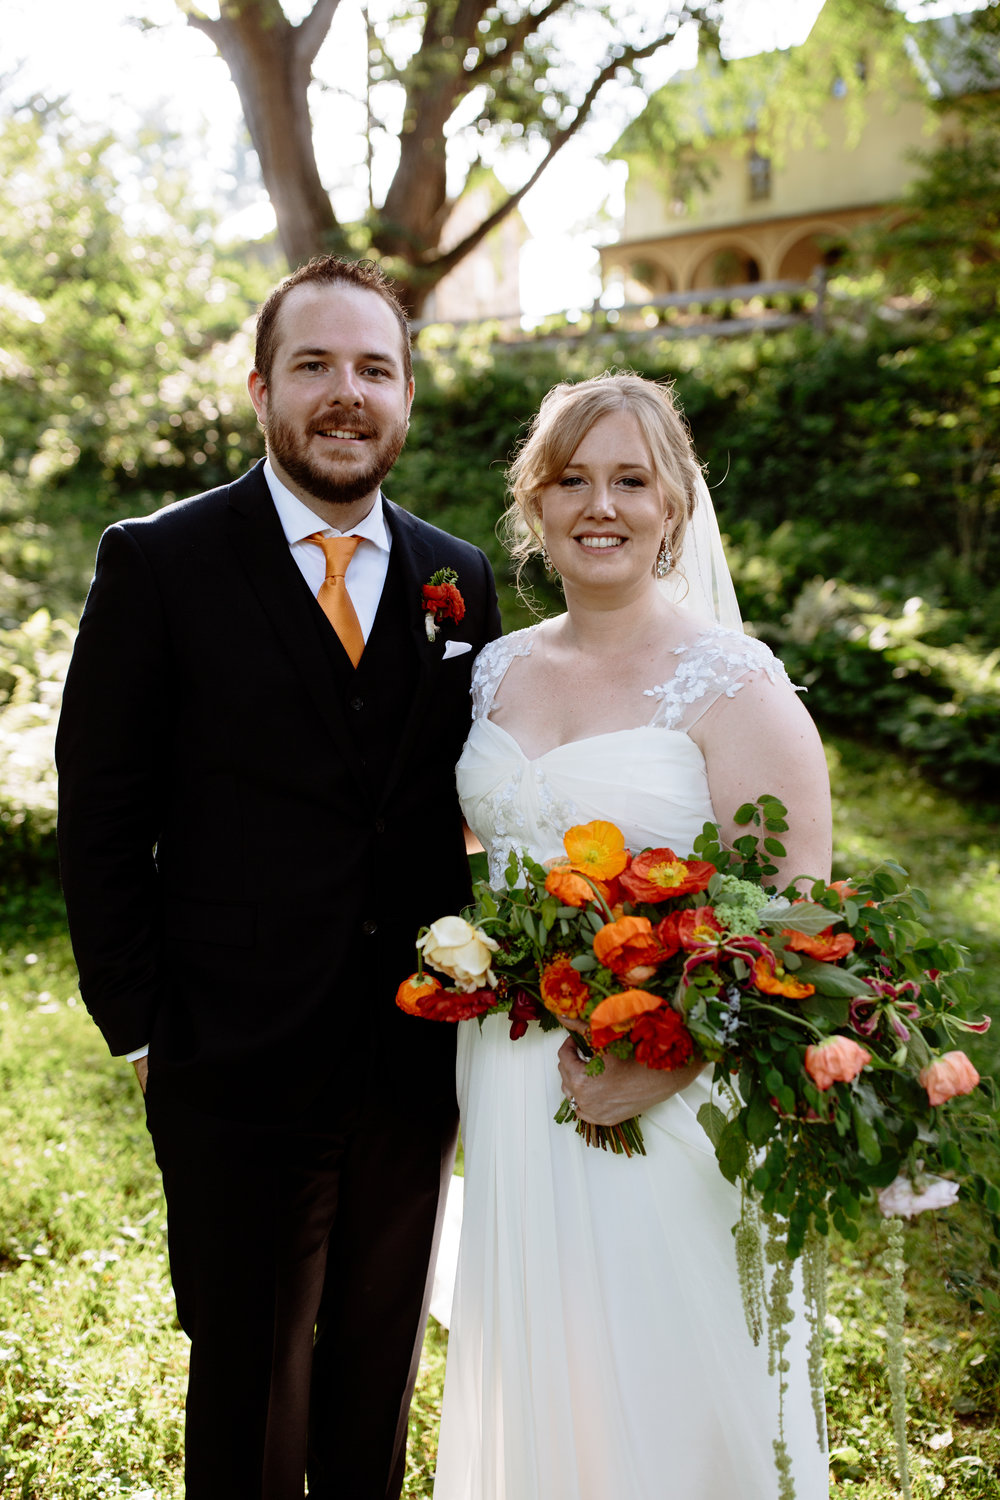 Garden wedding in Pennsylvania at Tyler Arboretum with Philadelphia Wedding Planner Heart & Dash and With Love and Embers-615.jpg